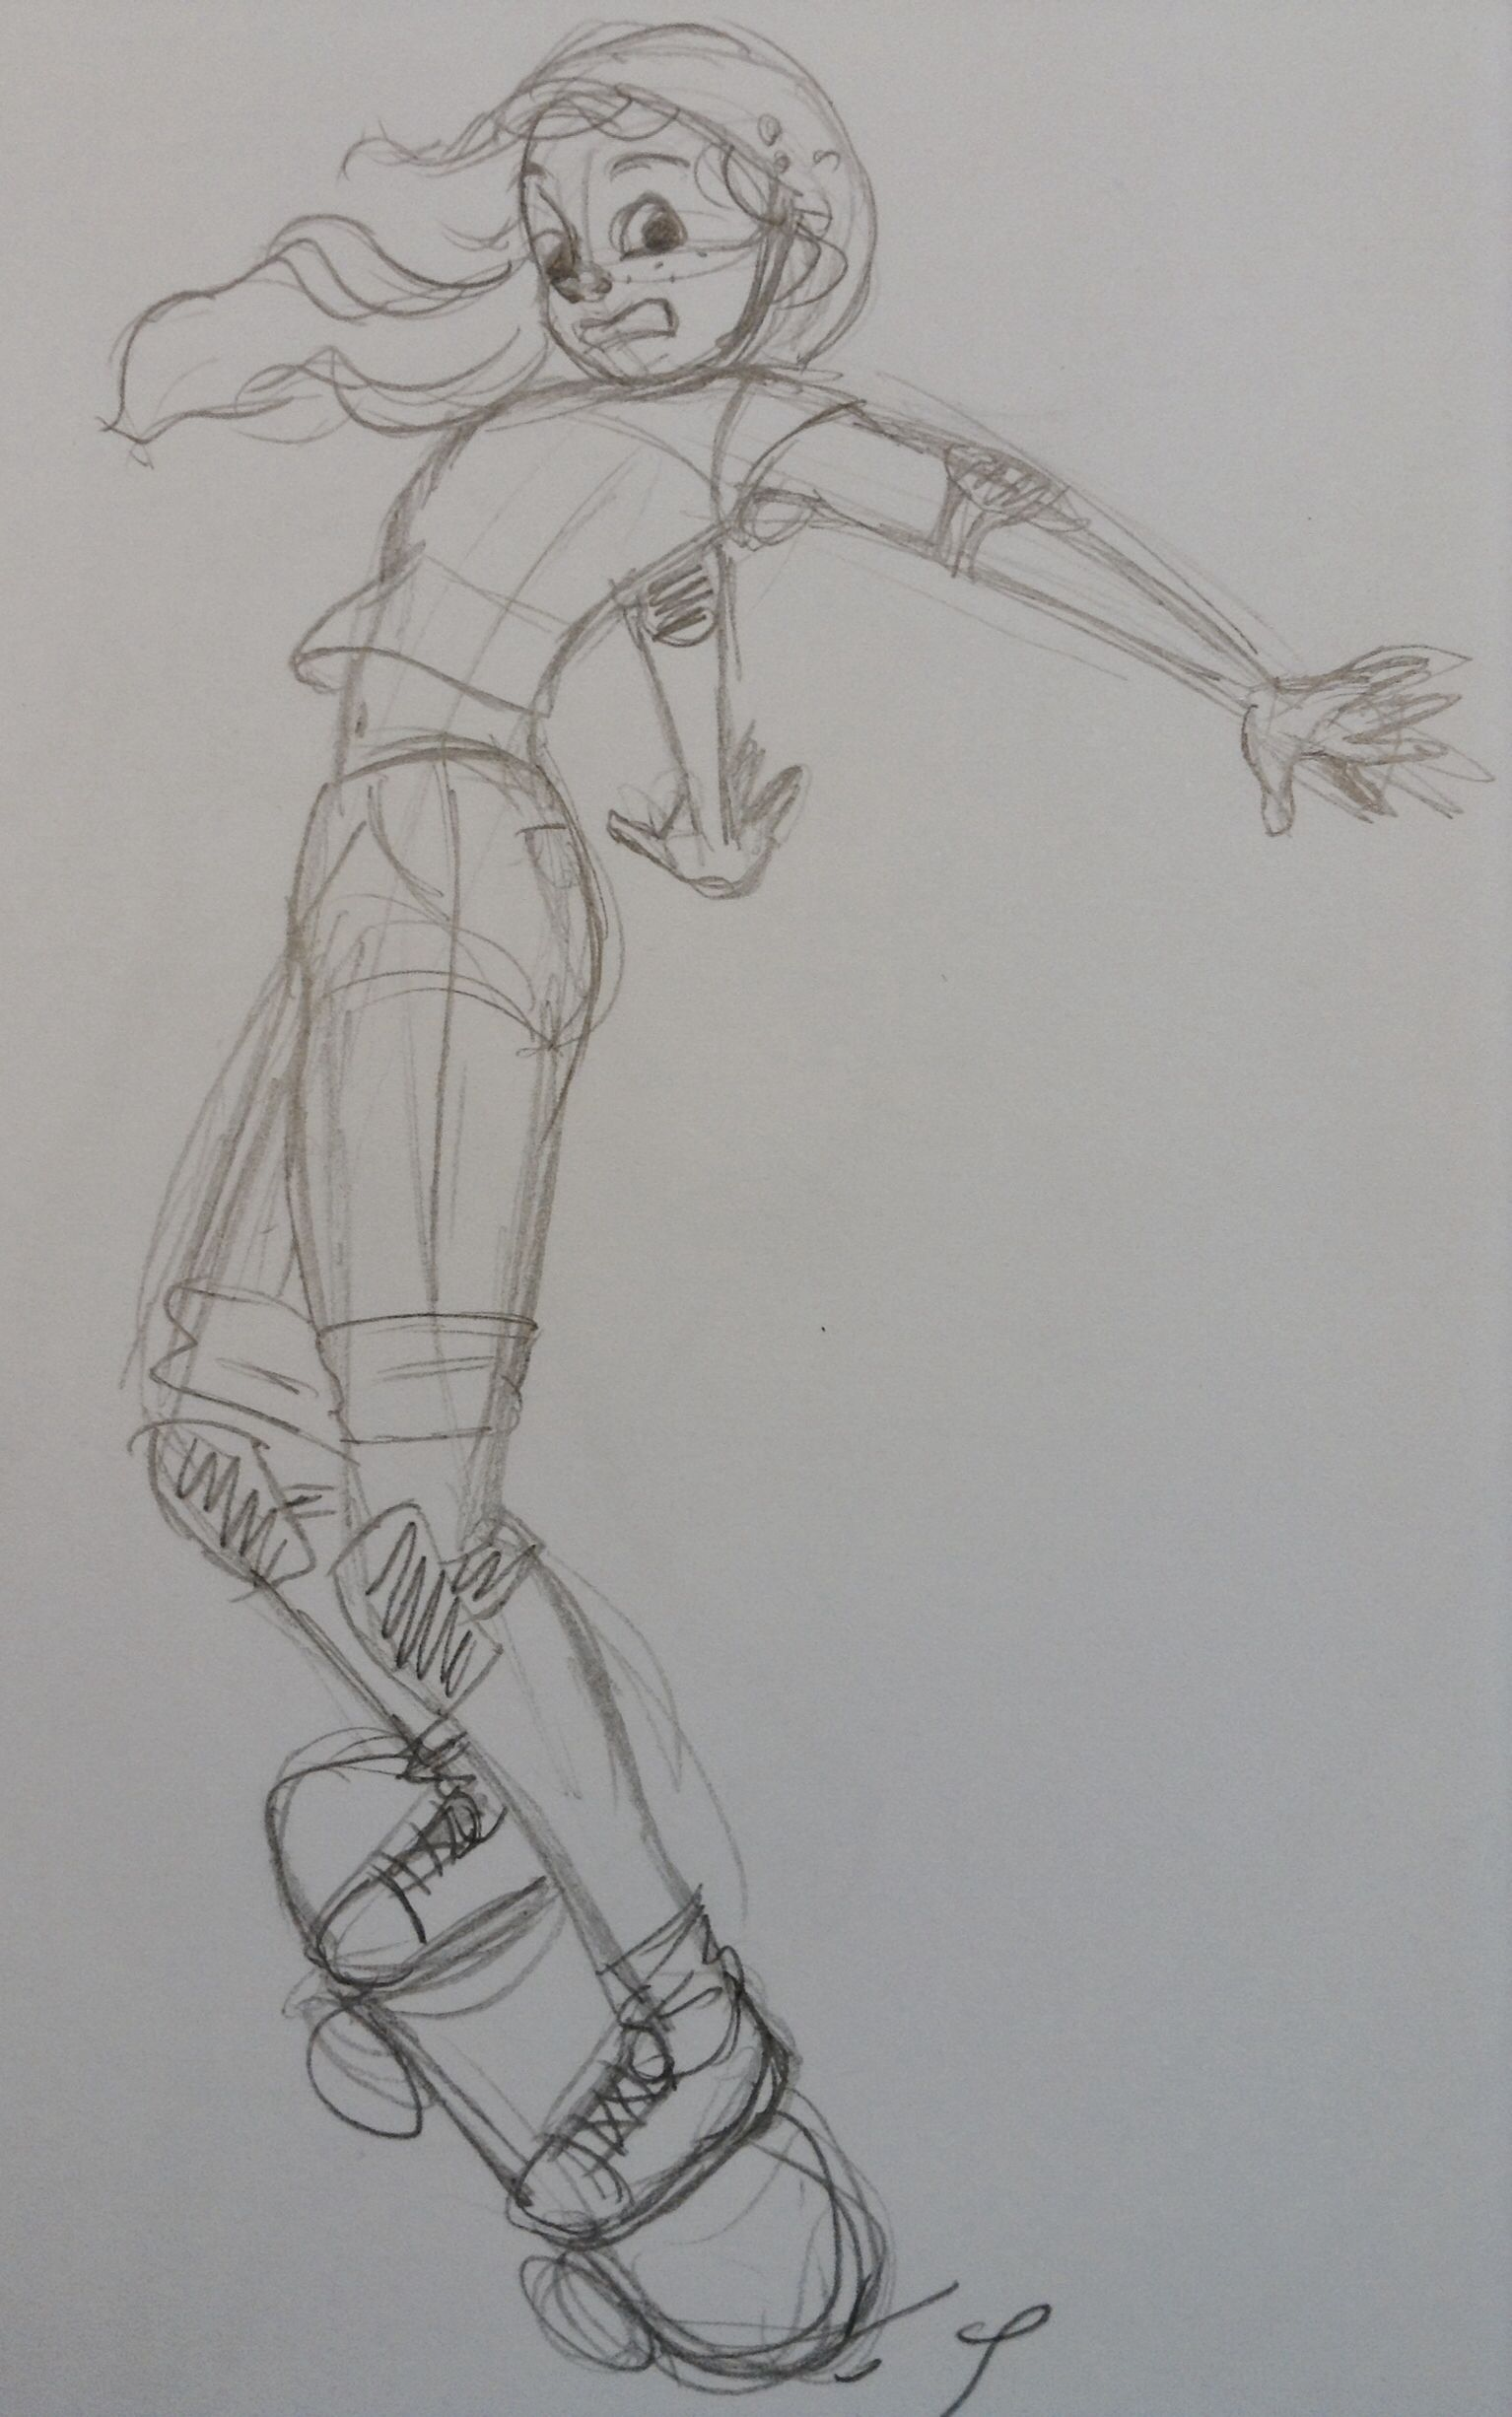 Sketch of a girl. By Yenthe J.